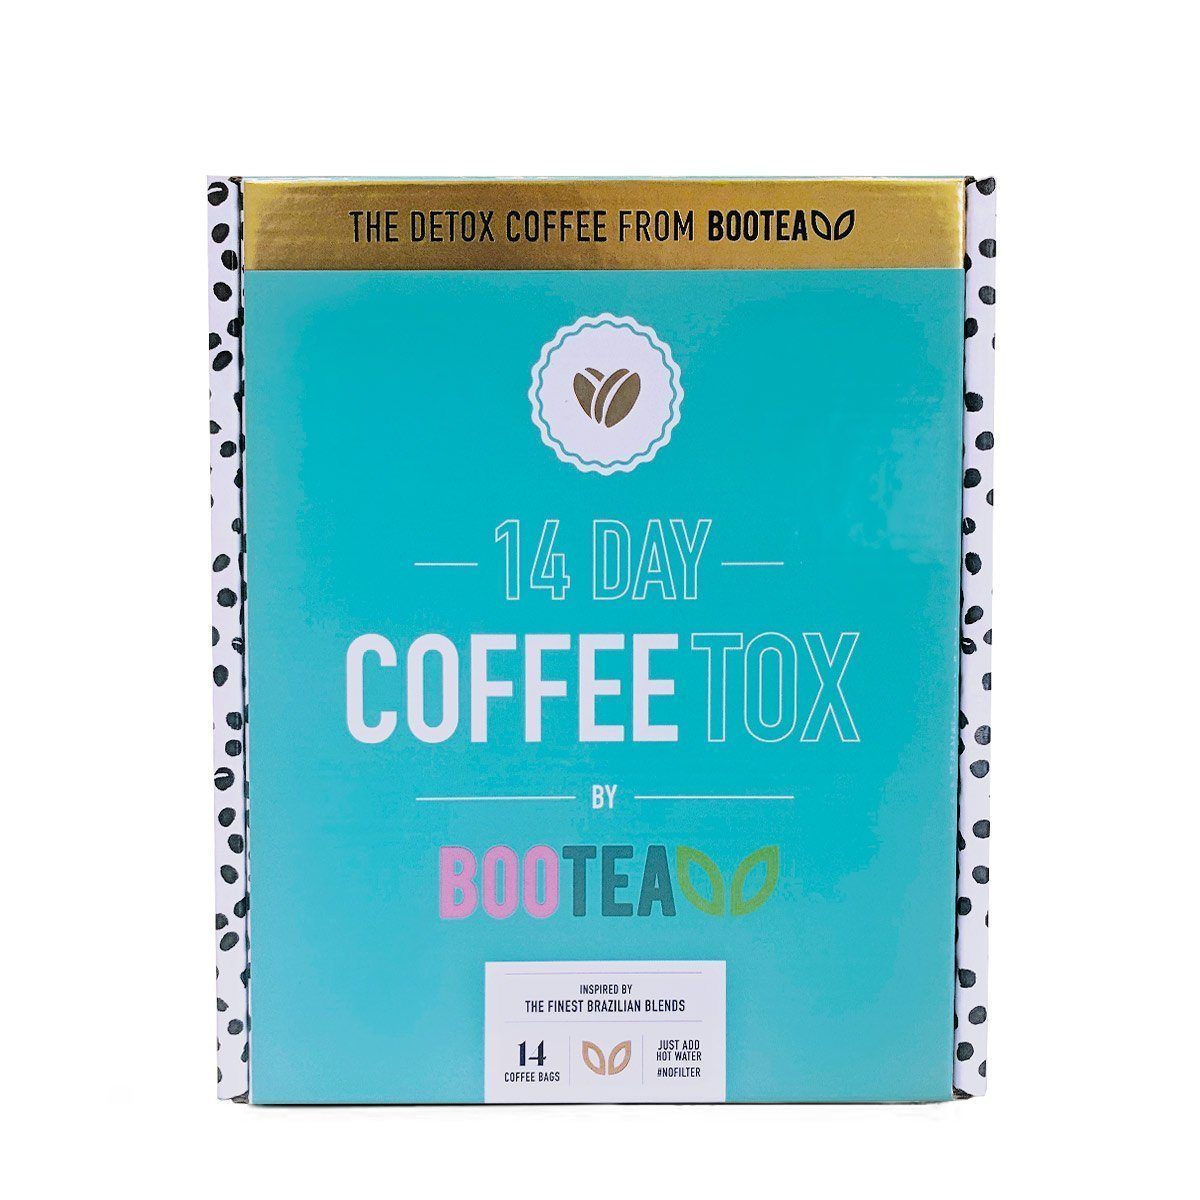 Coffeetox Limited Edition greentea Bootea